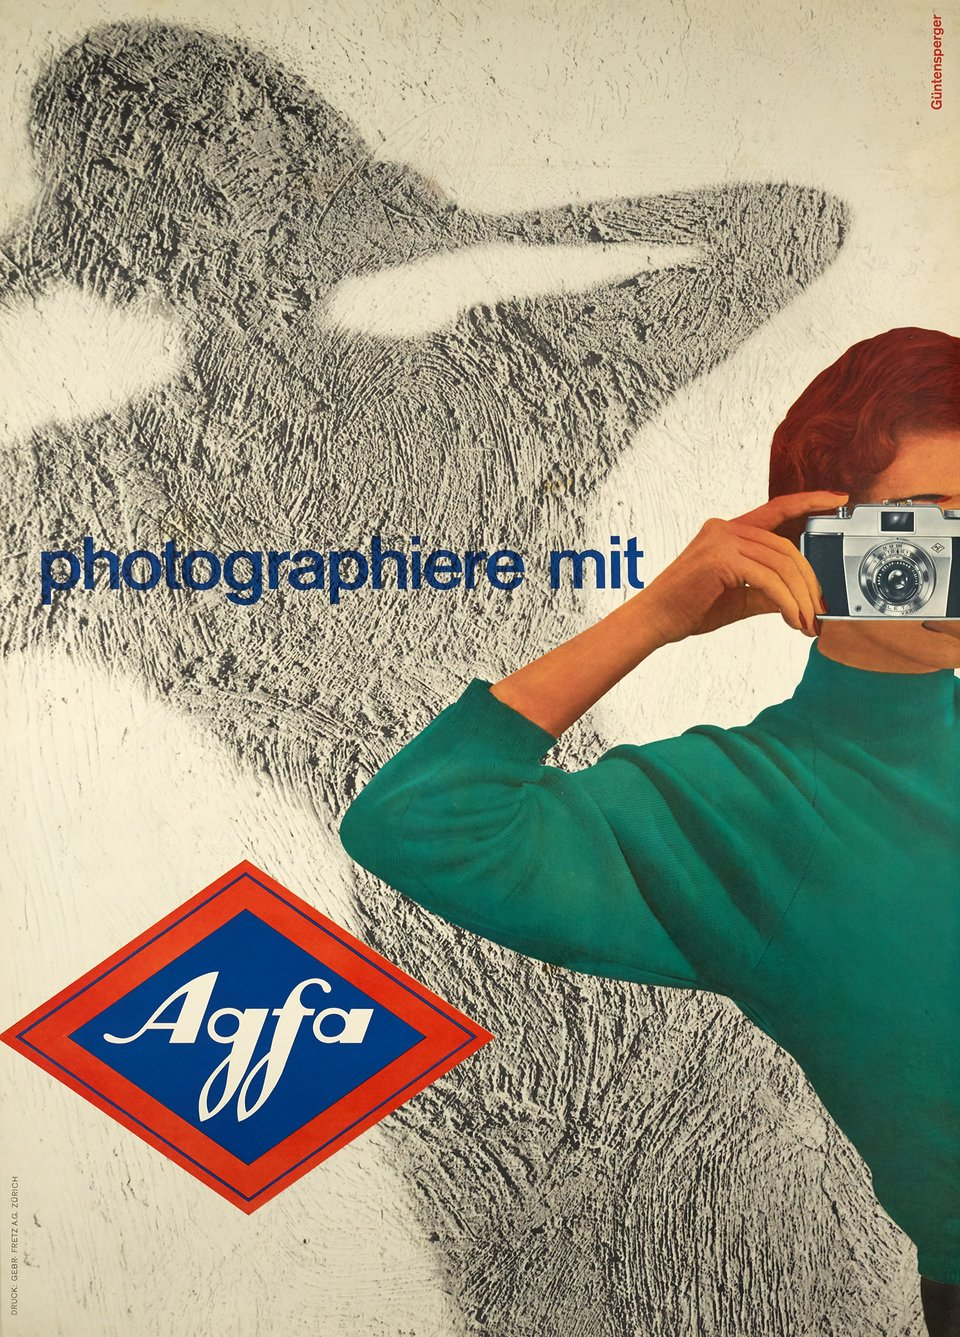 Photographiere mit Agfa – Affiche ancienne – Wilfried GUNTENSPERGER – 1957